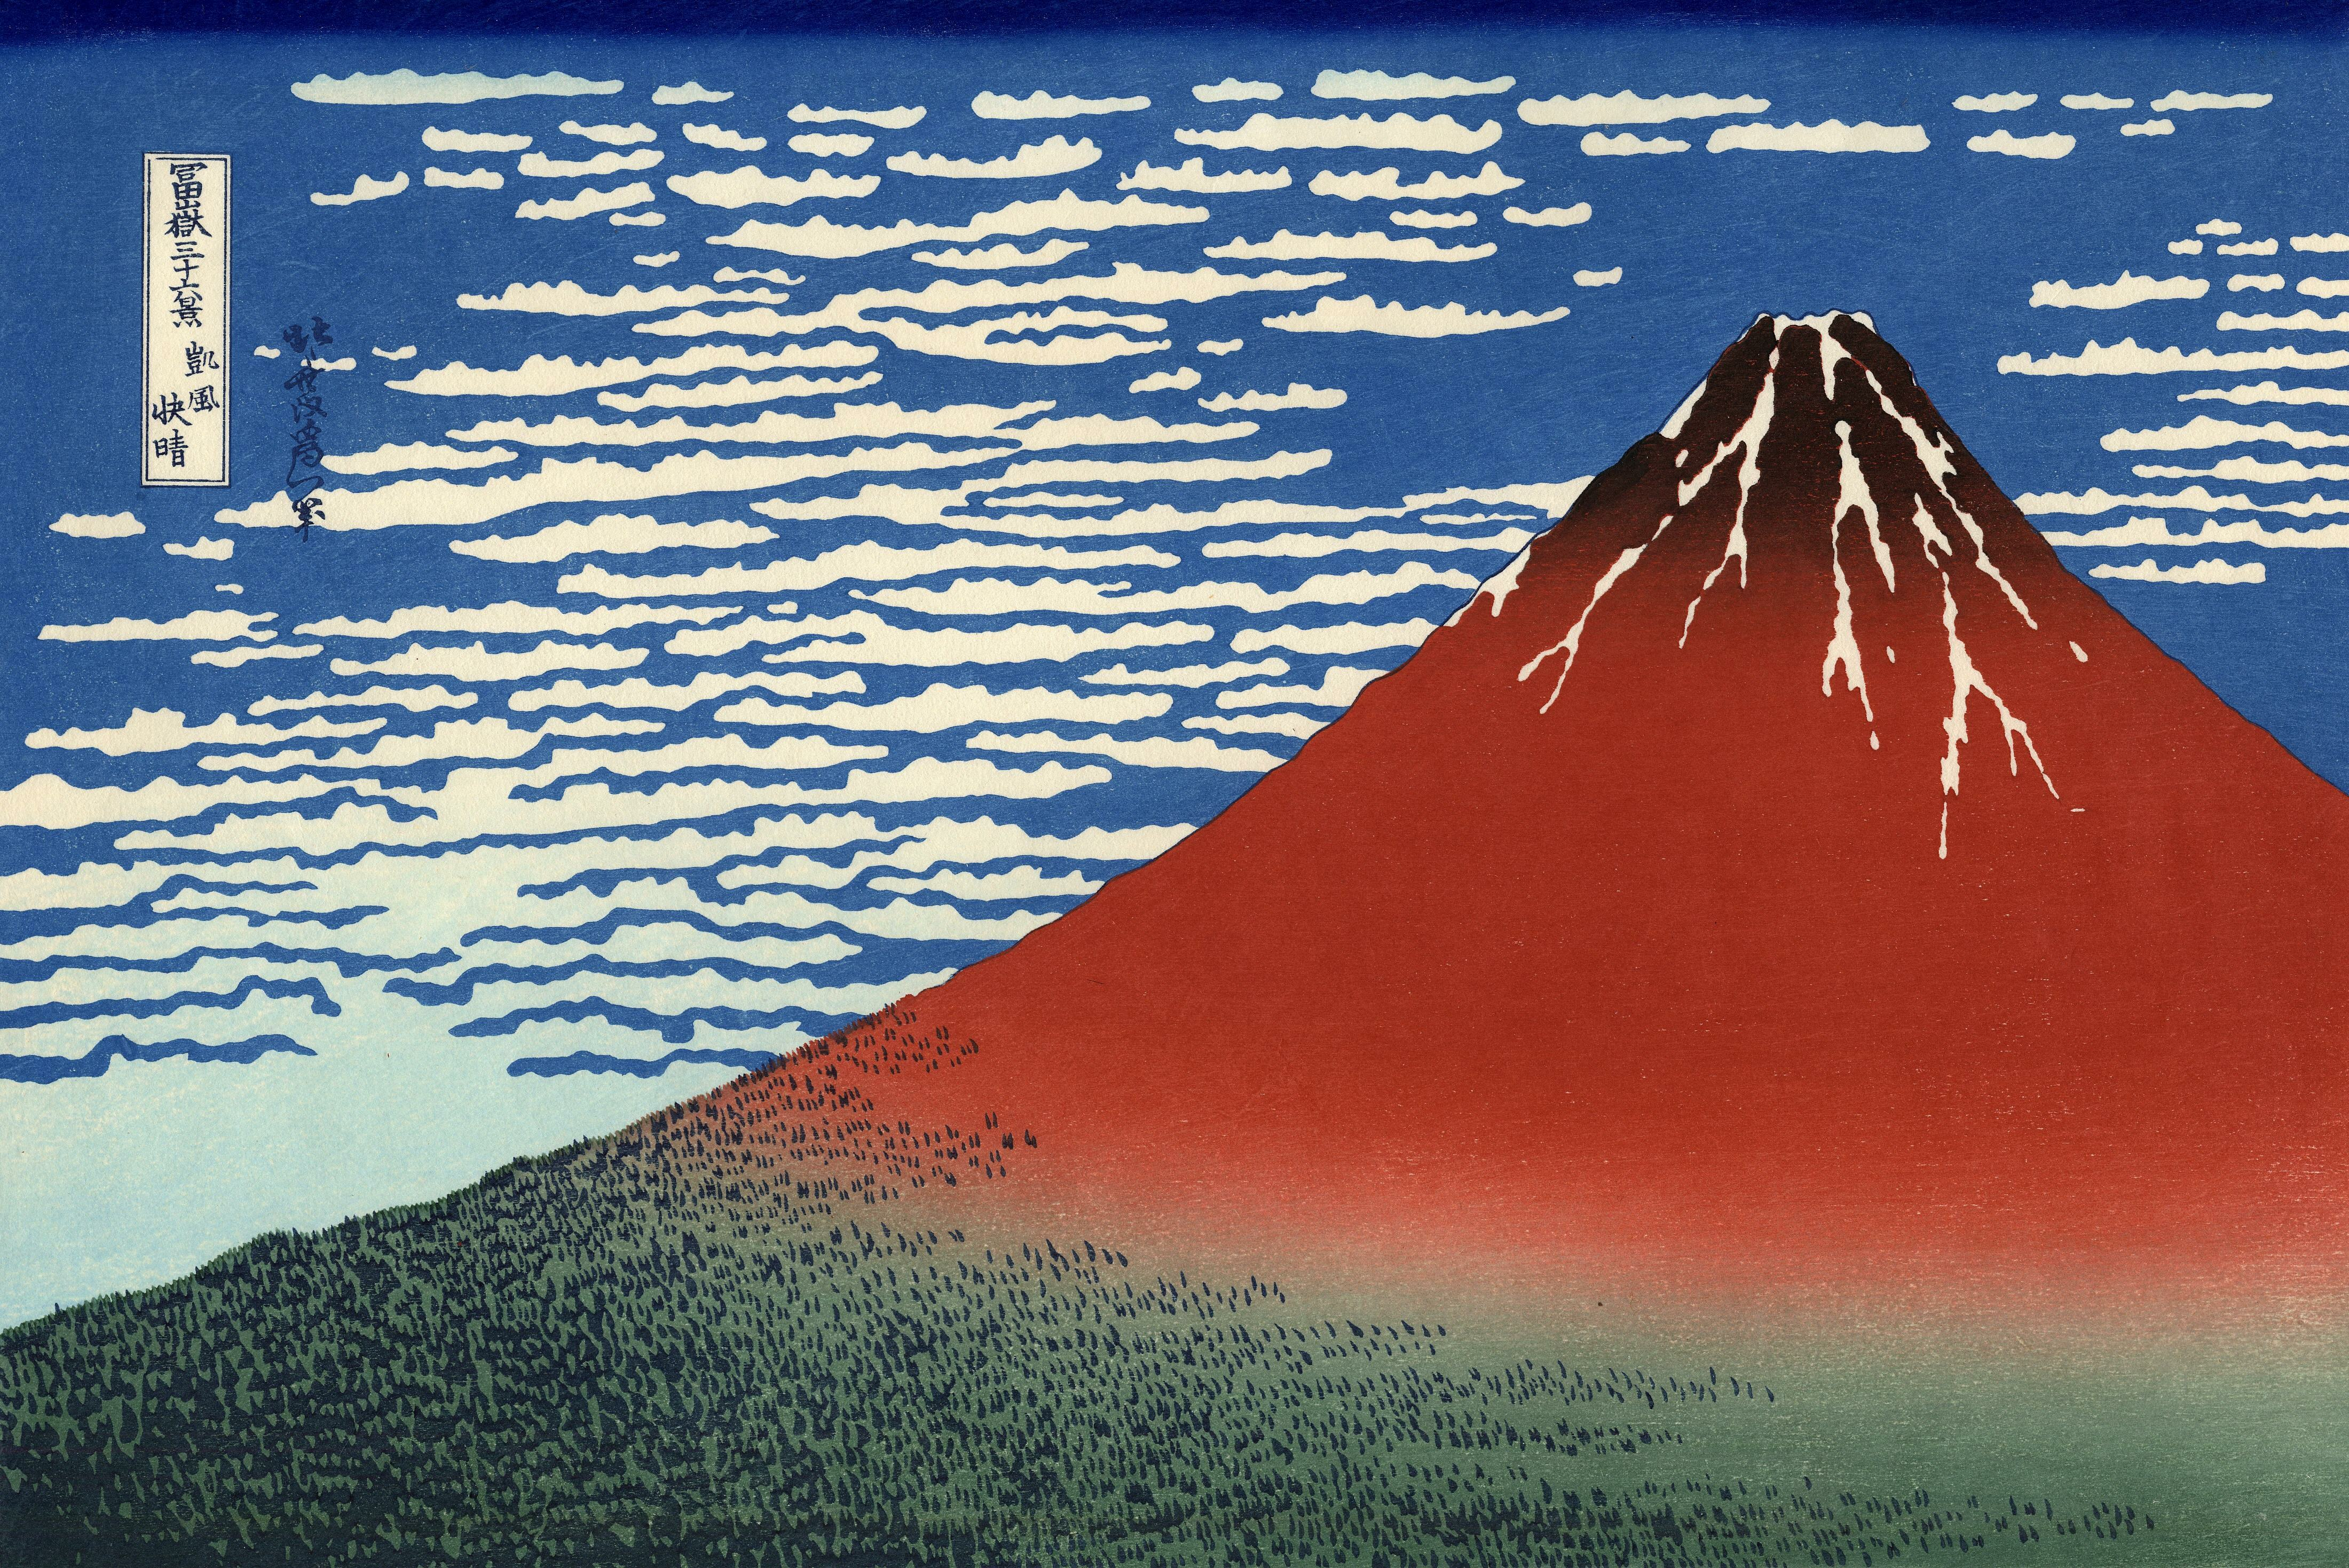 http://upload.wikimedia.org/wikipedia/commons/5/57/Red_Fuji_southern_wind_clear_morning.jpg